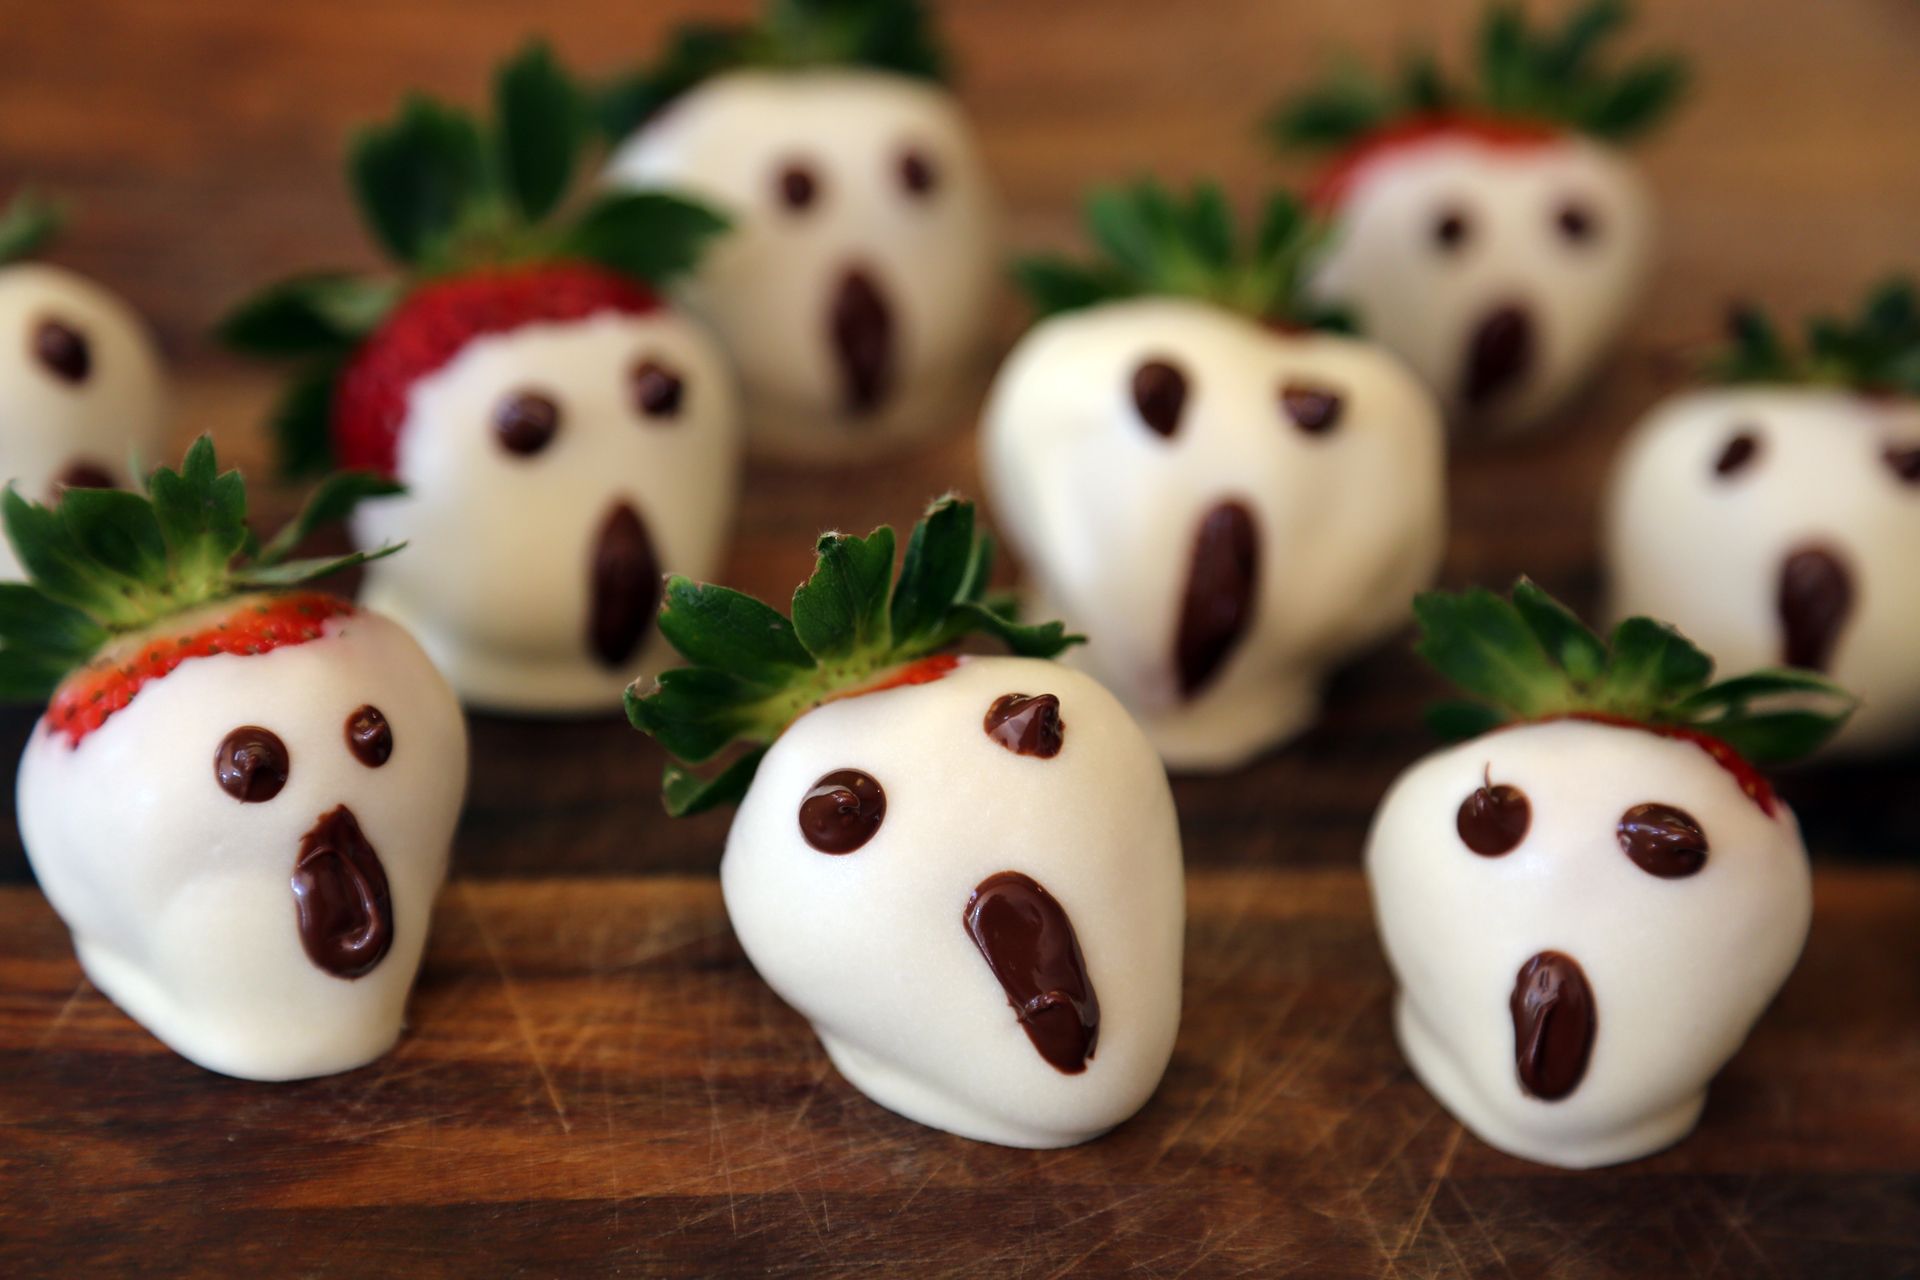 Halloween White Chocolate Dipped Strawberry Ghosts